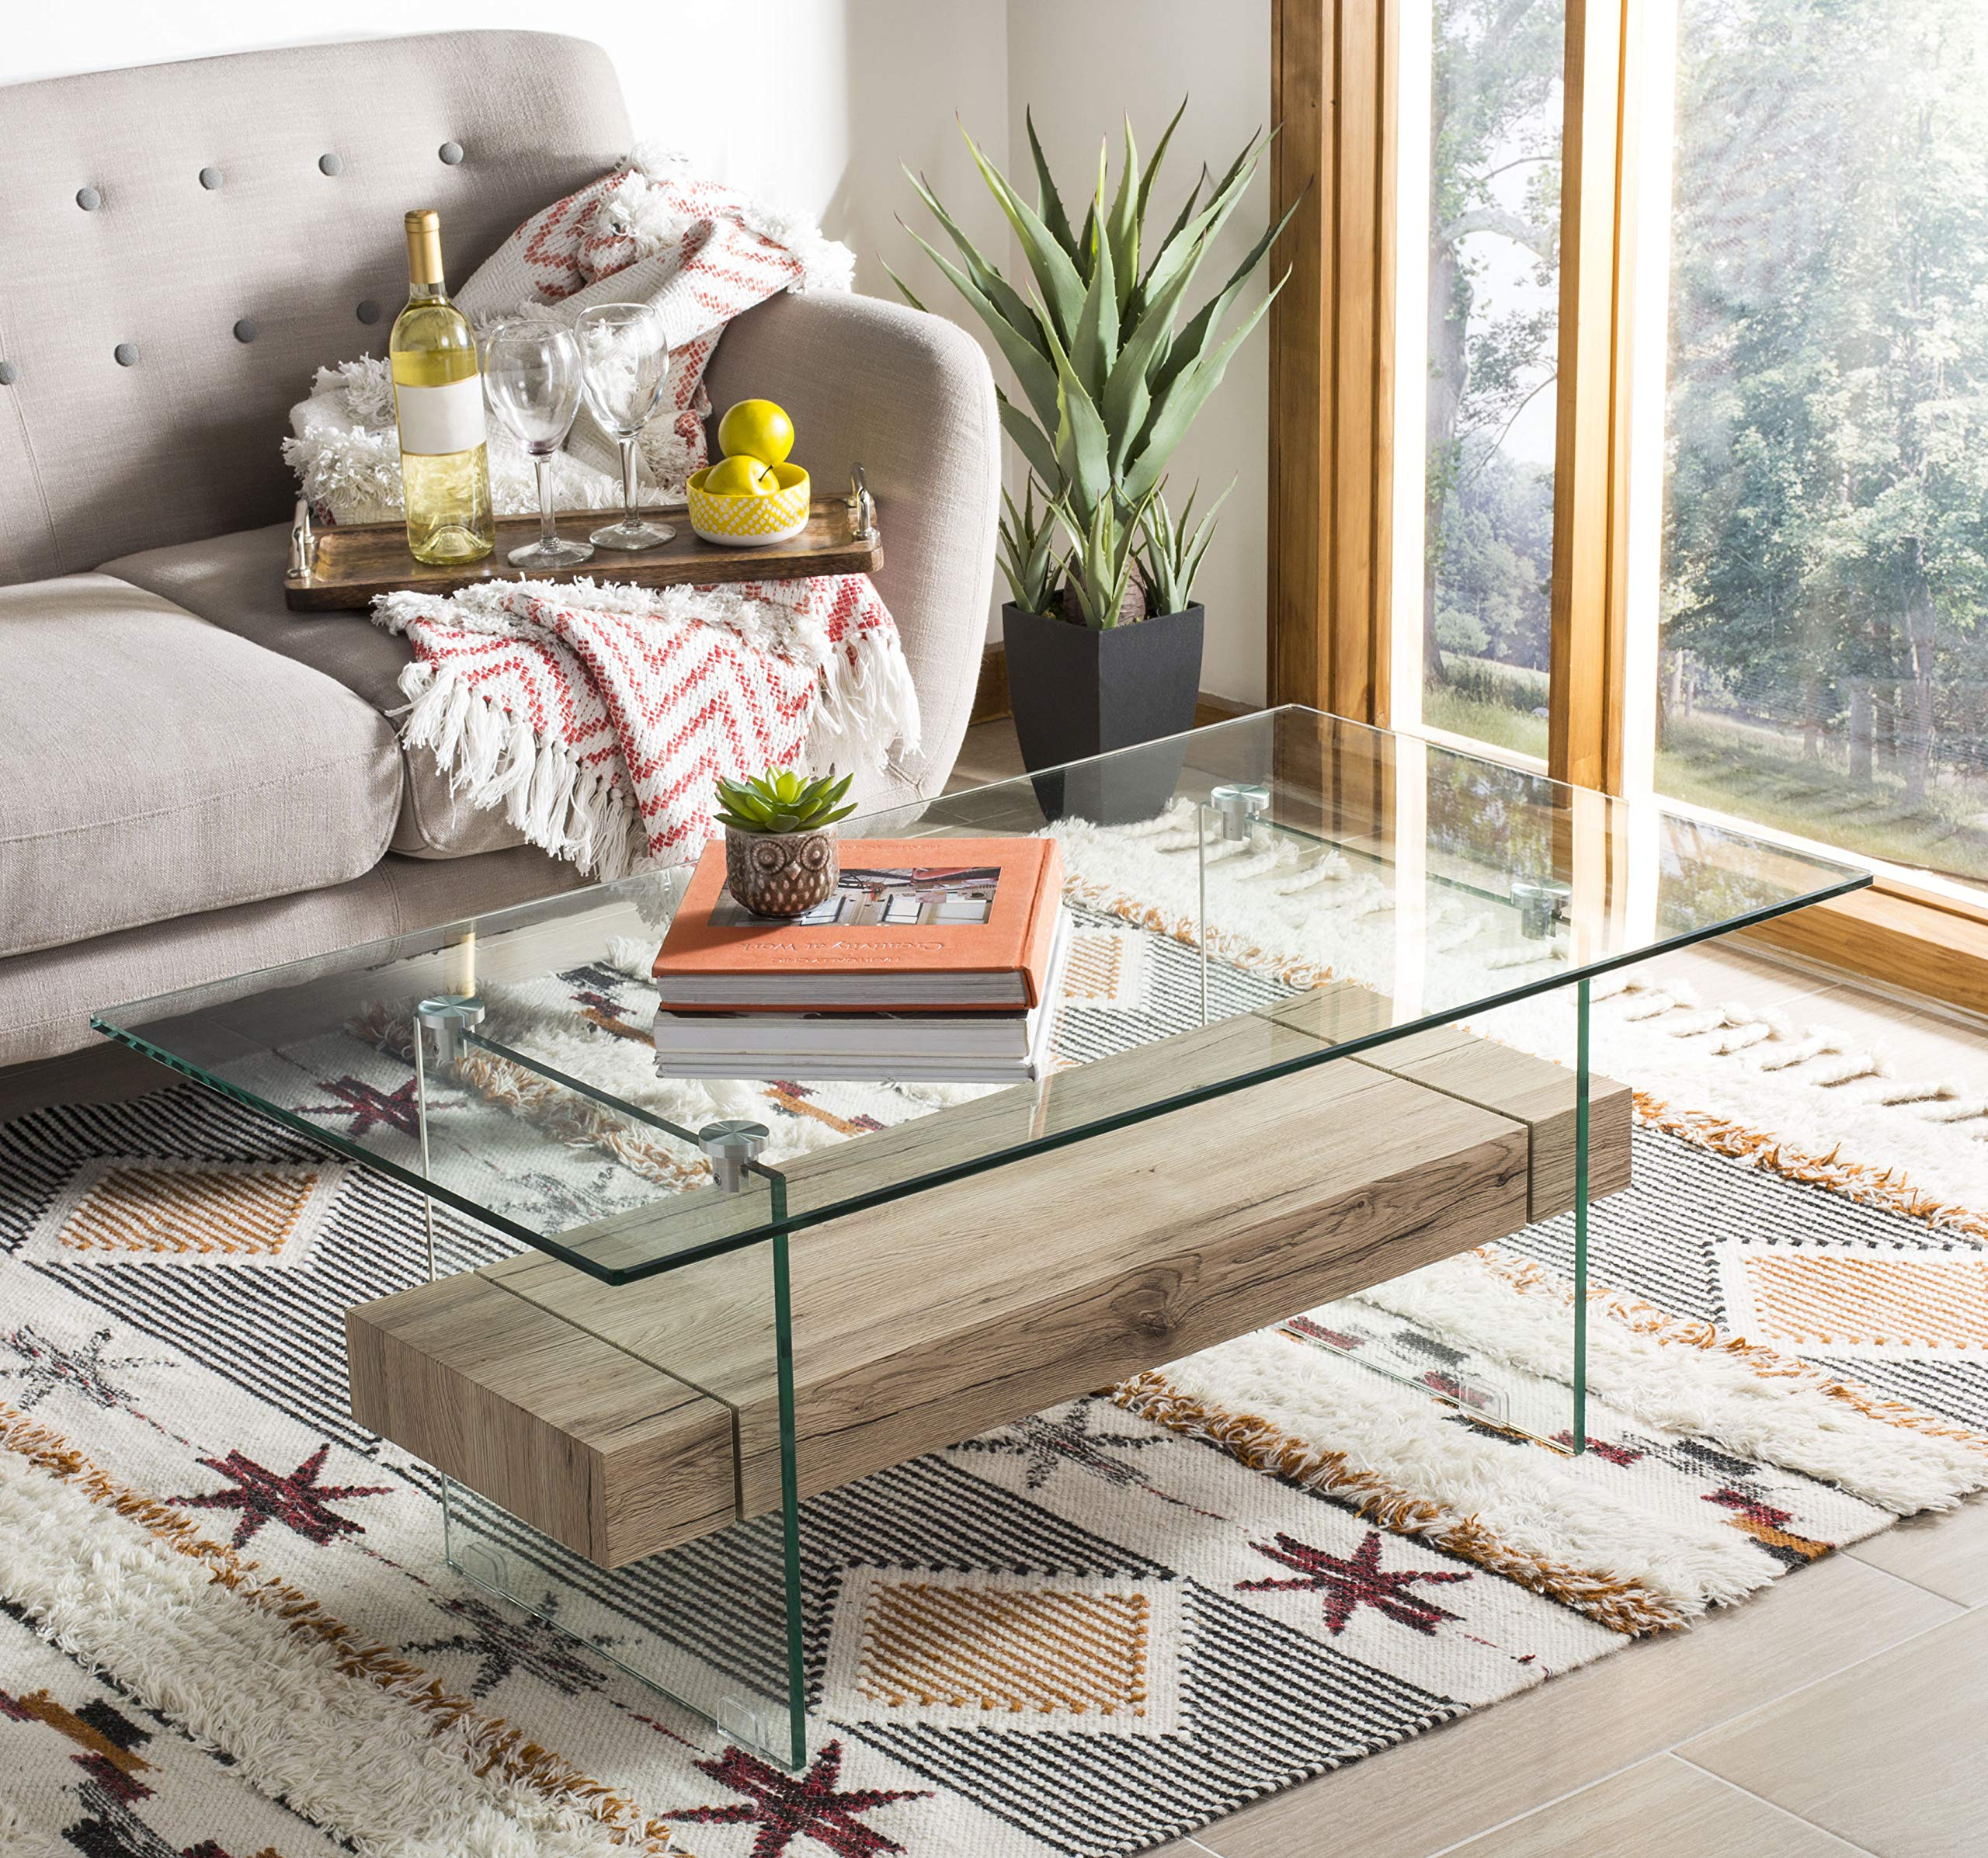 Safavieh COF7004A Home Collection Kayley Natural Rectangular Modern Glass Coffee Table, by Safavieh